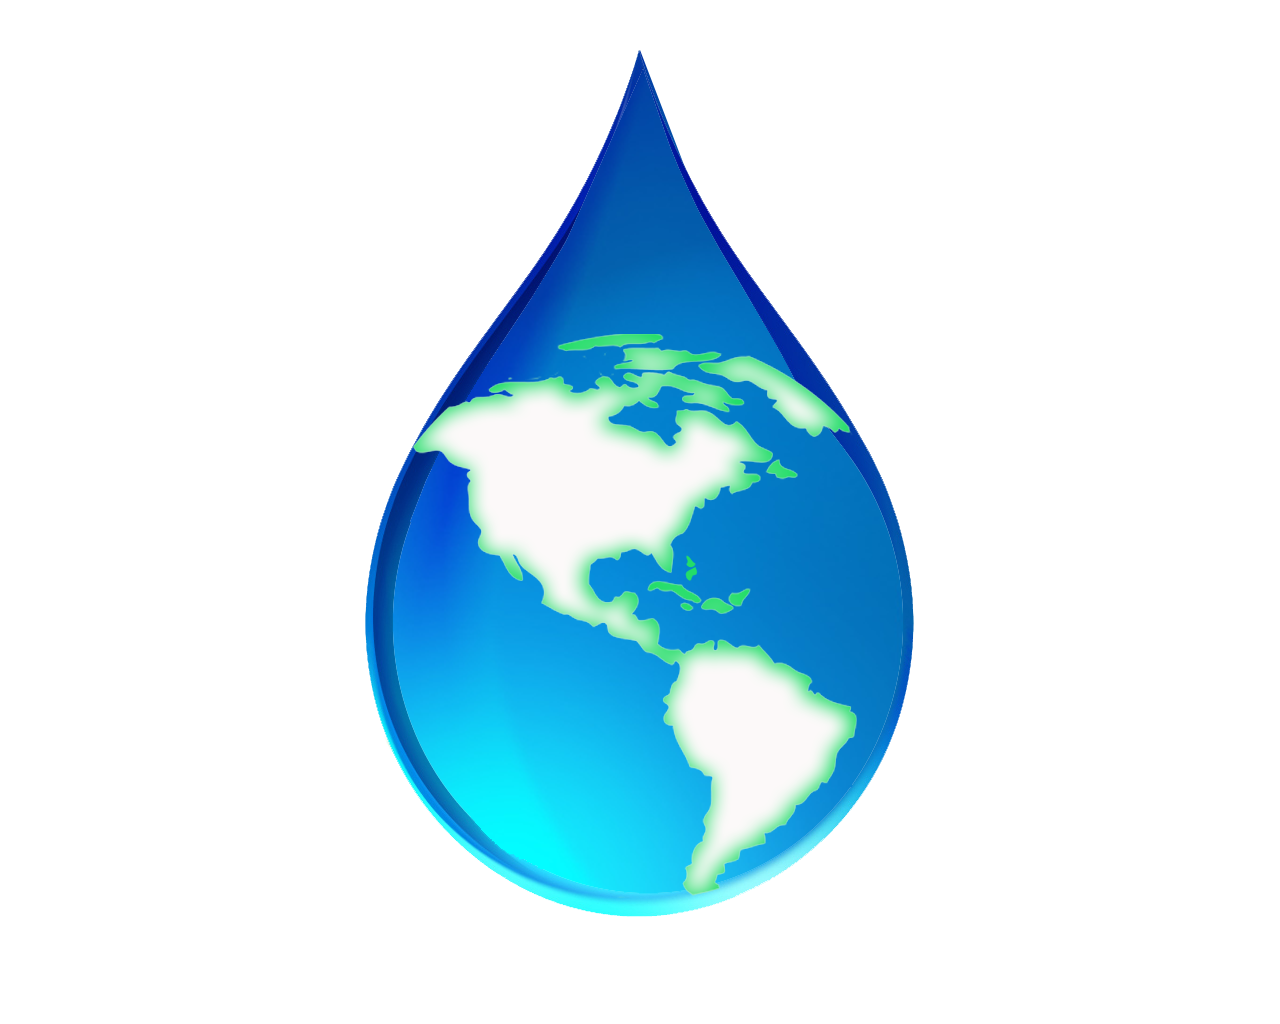 Best Free Water Drop Png Image image #46394